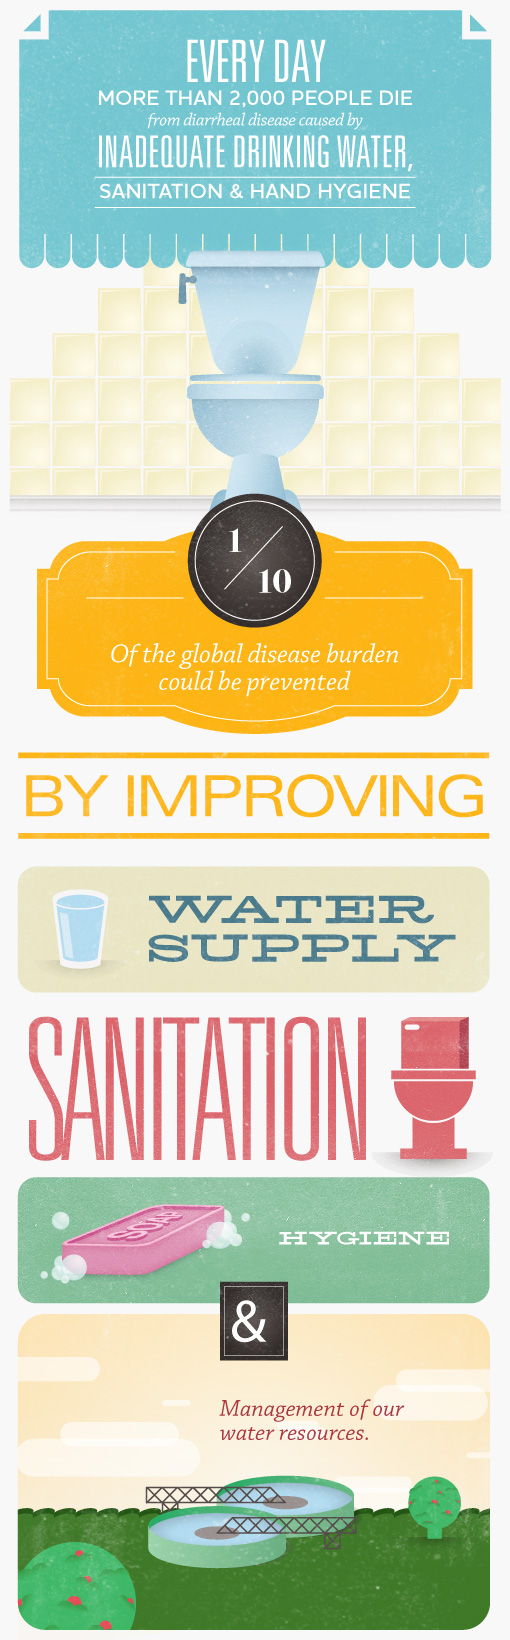 water supply improvements can save lives